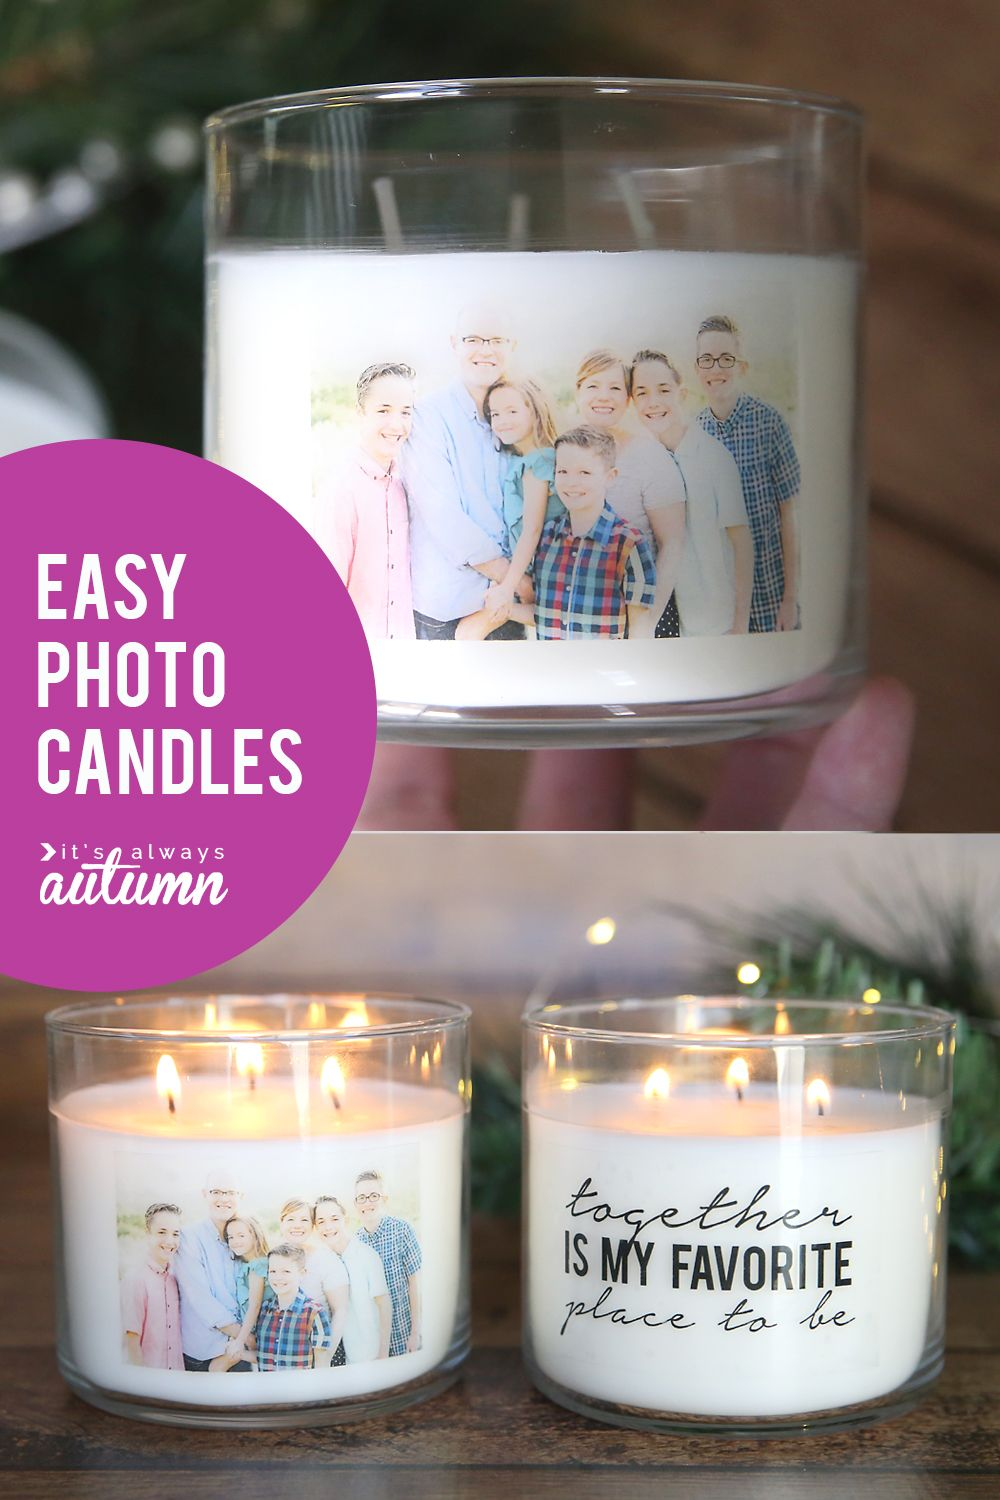 How To Make Personalized Candles Cheap Easy Handmade Gift It S Always Autumn Easy Handmade Gifts Personalized Candles Photo Candles